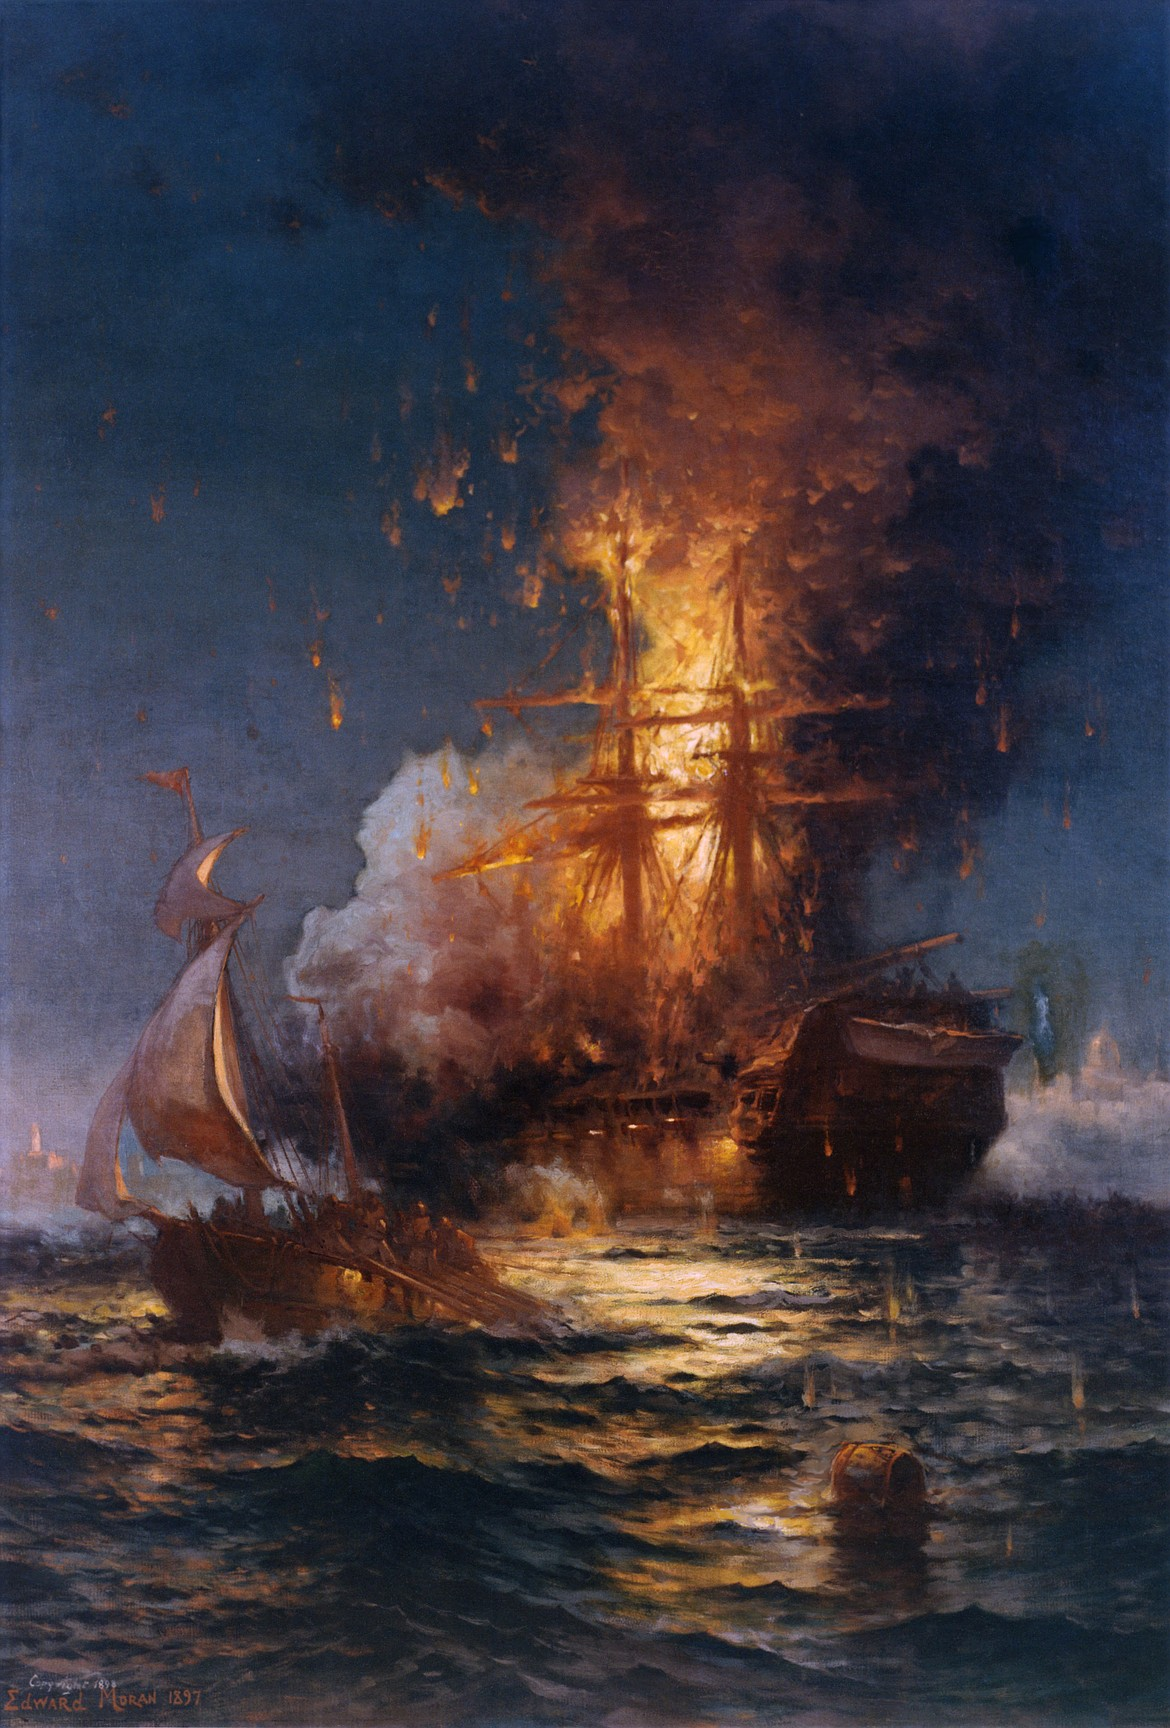 Painting by English-born American artist Edward Moran (1829-1901) of deliberate burning of frigate USS Philadelphia captured by Tripolitans after running aground in Tripoli harbor during Barbary Wars, the destruction made by Stephen Decatur and 60 men who escaped in ketch Intrepid shown in foreground.